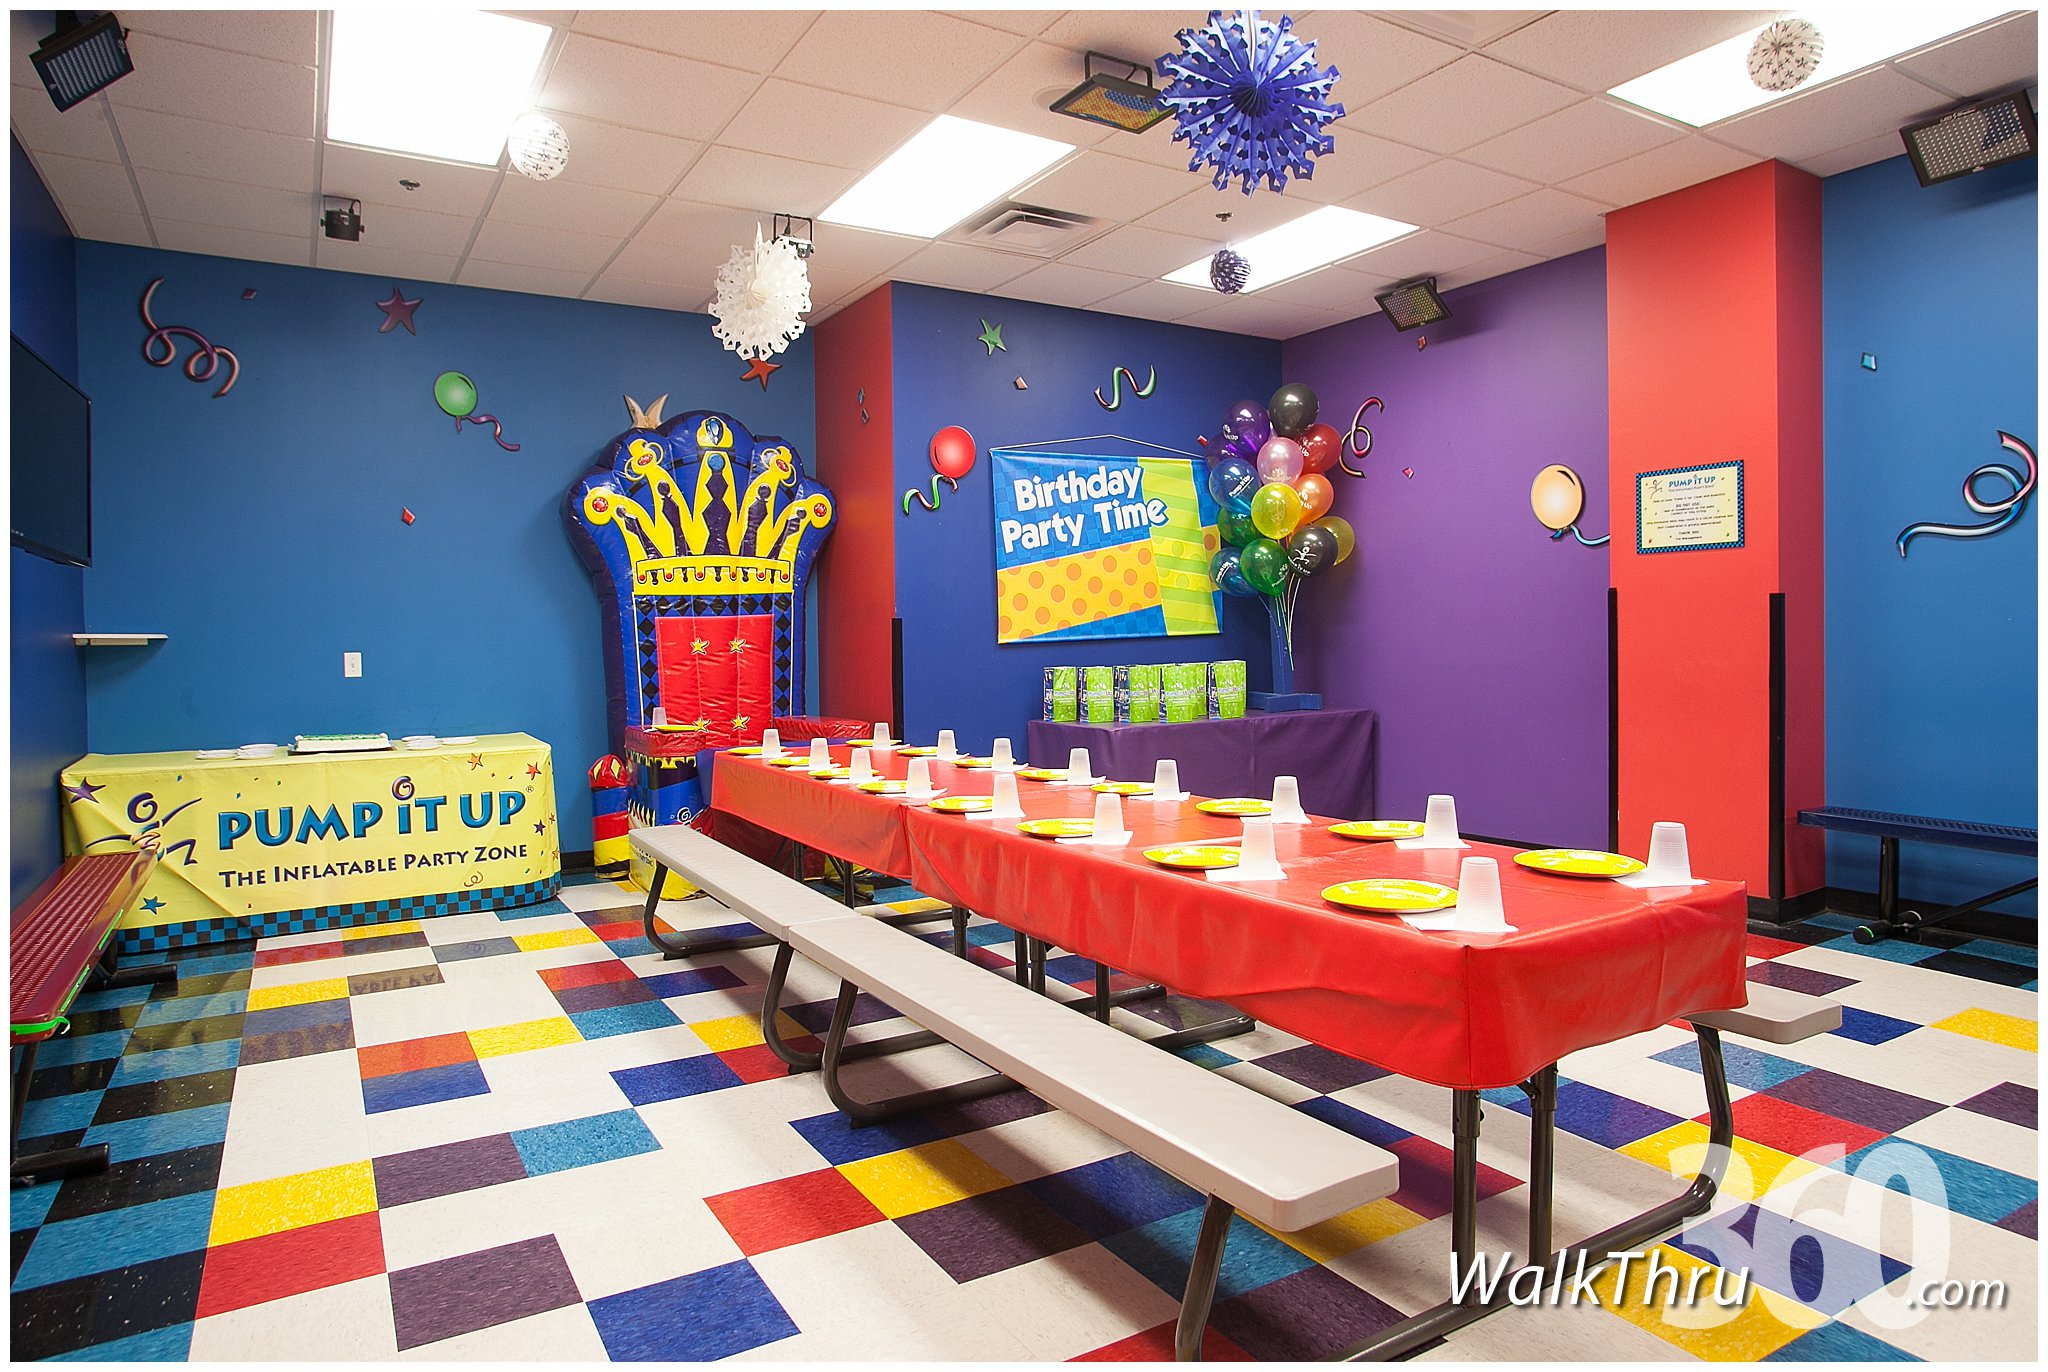 Pump It Up Kids Entertainment Lincoln Park Virtual Tour